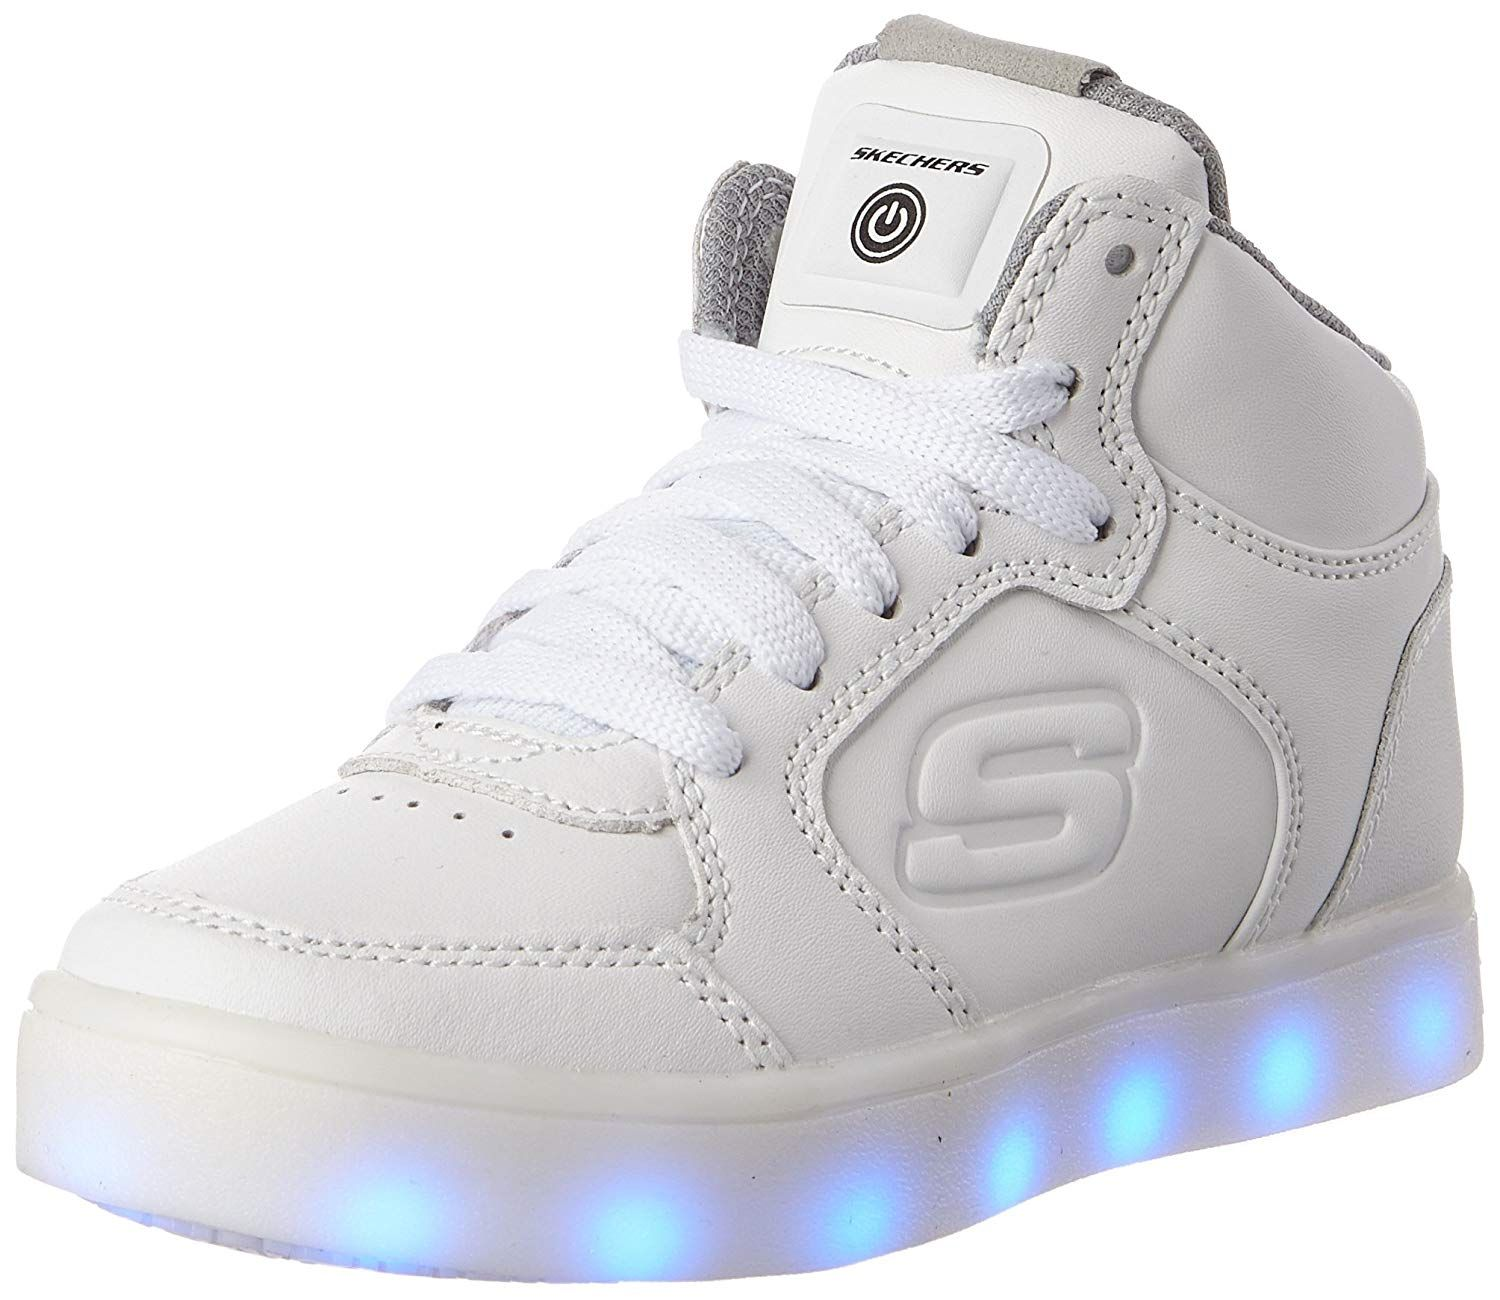 Skechers Kids' Energy Lights Sneaker | Coupons and Deals in